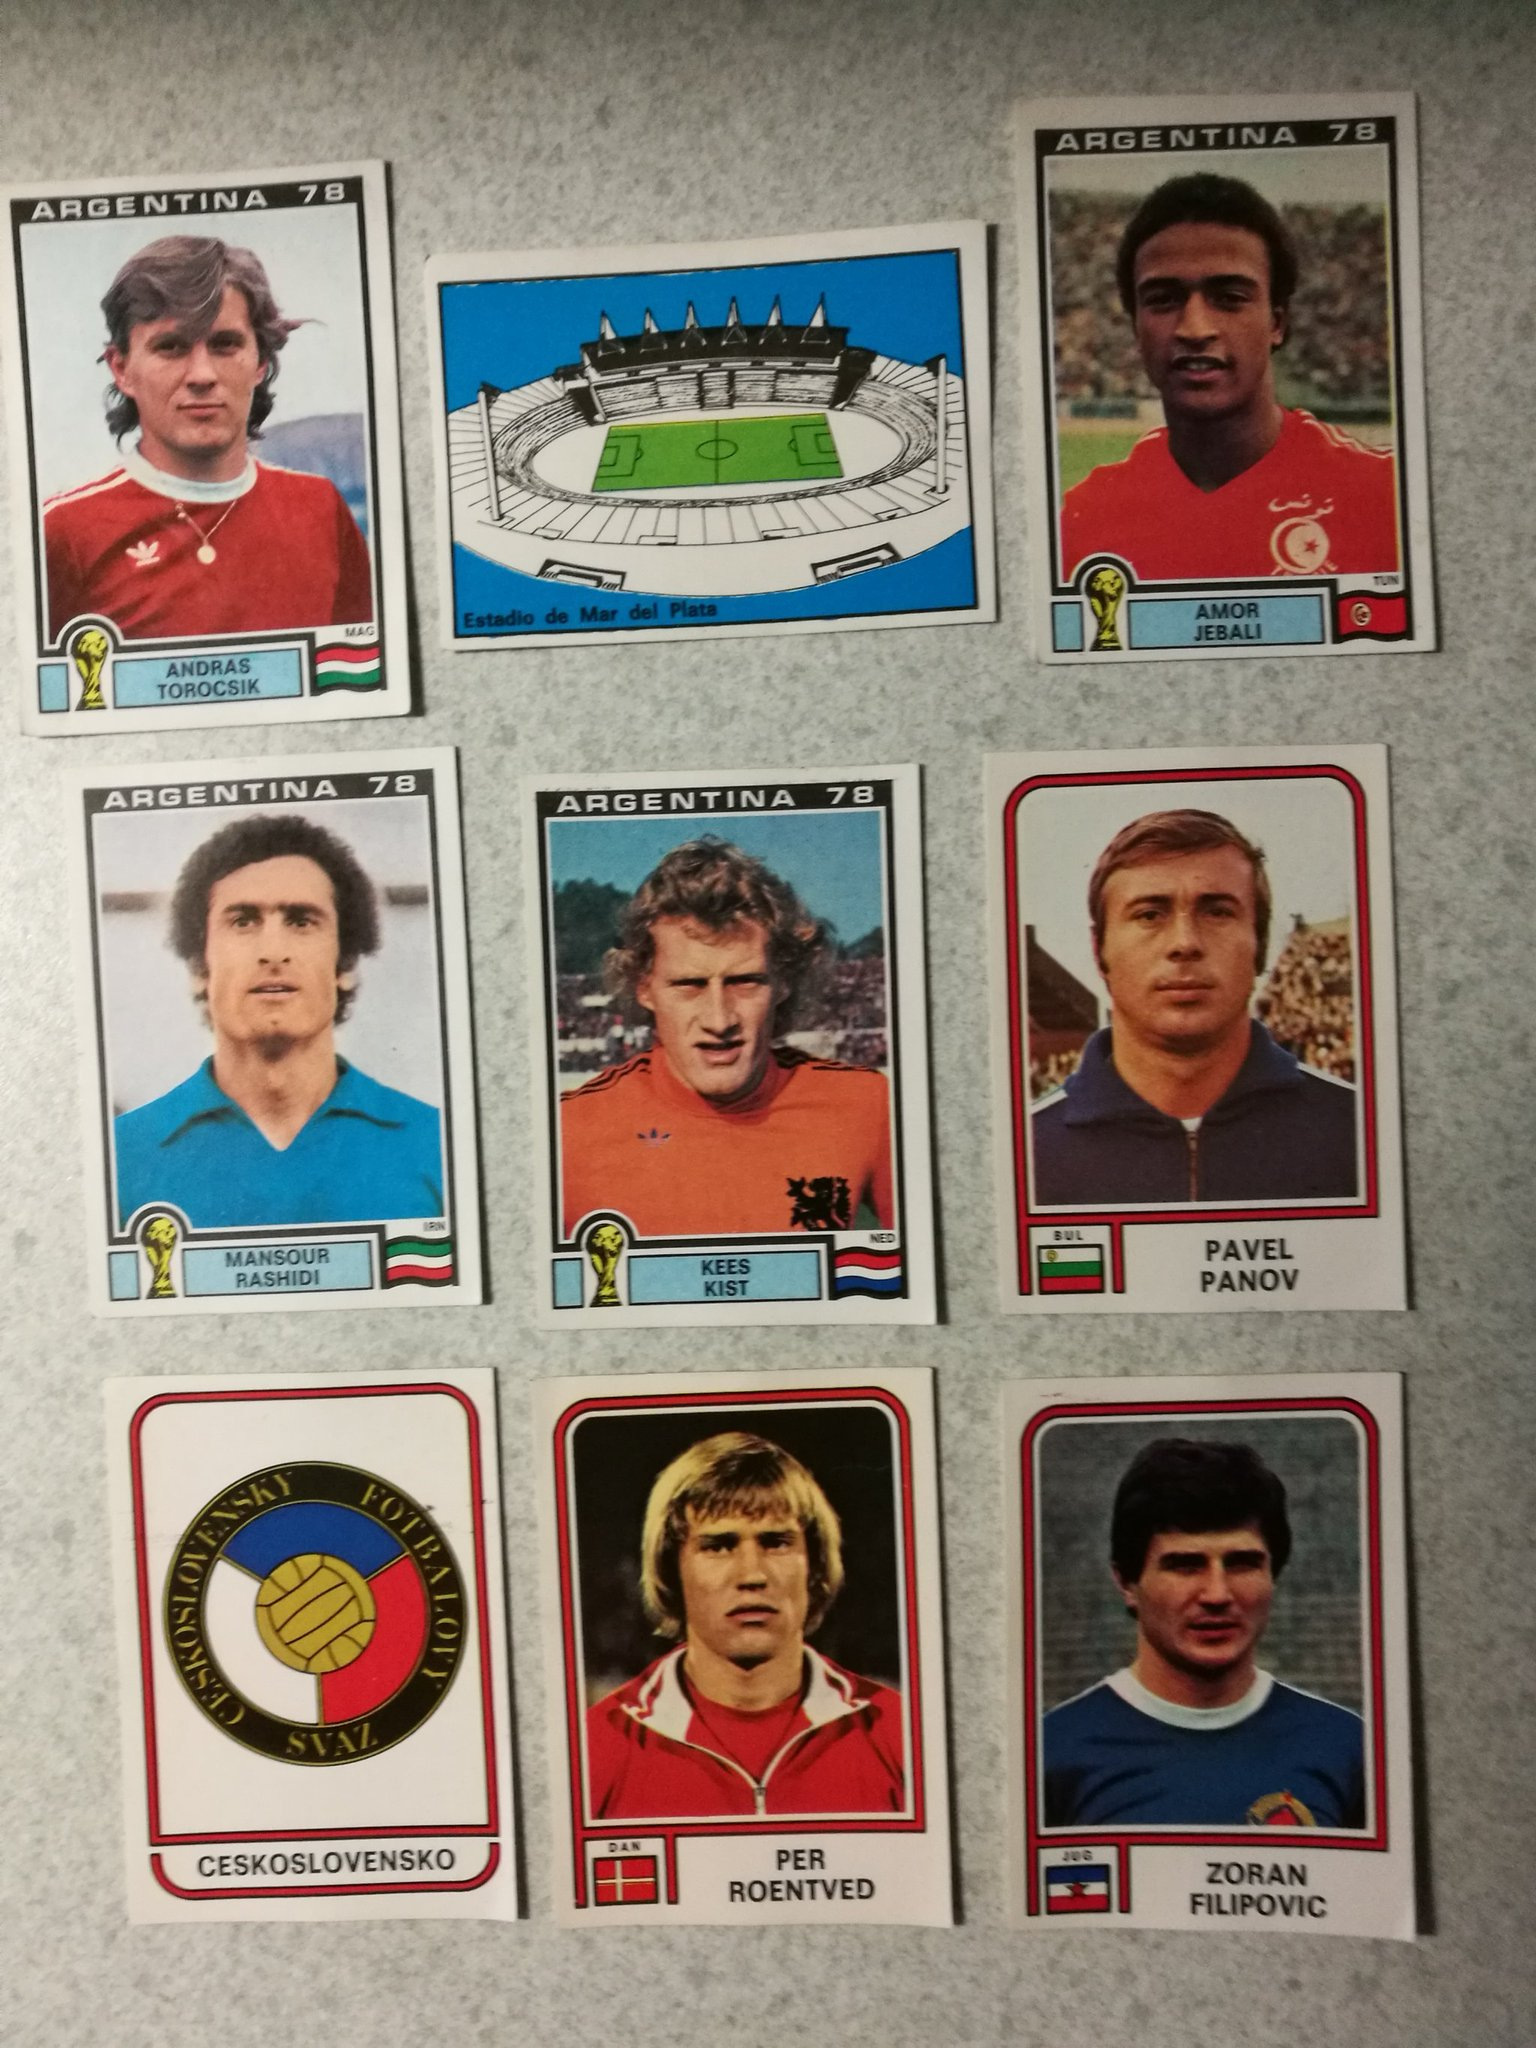 Figurine Panini ARGENTINA 78 VM 1978 World Cup, 9 olika stickers collectors card